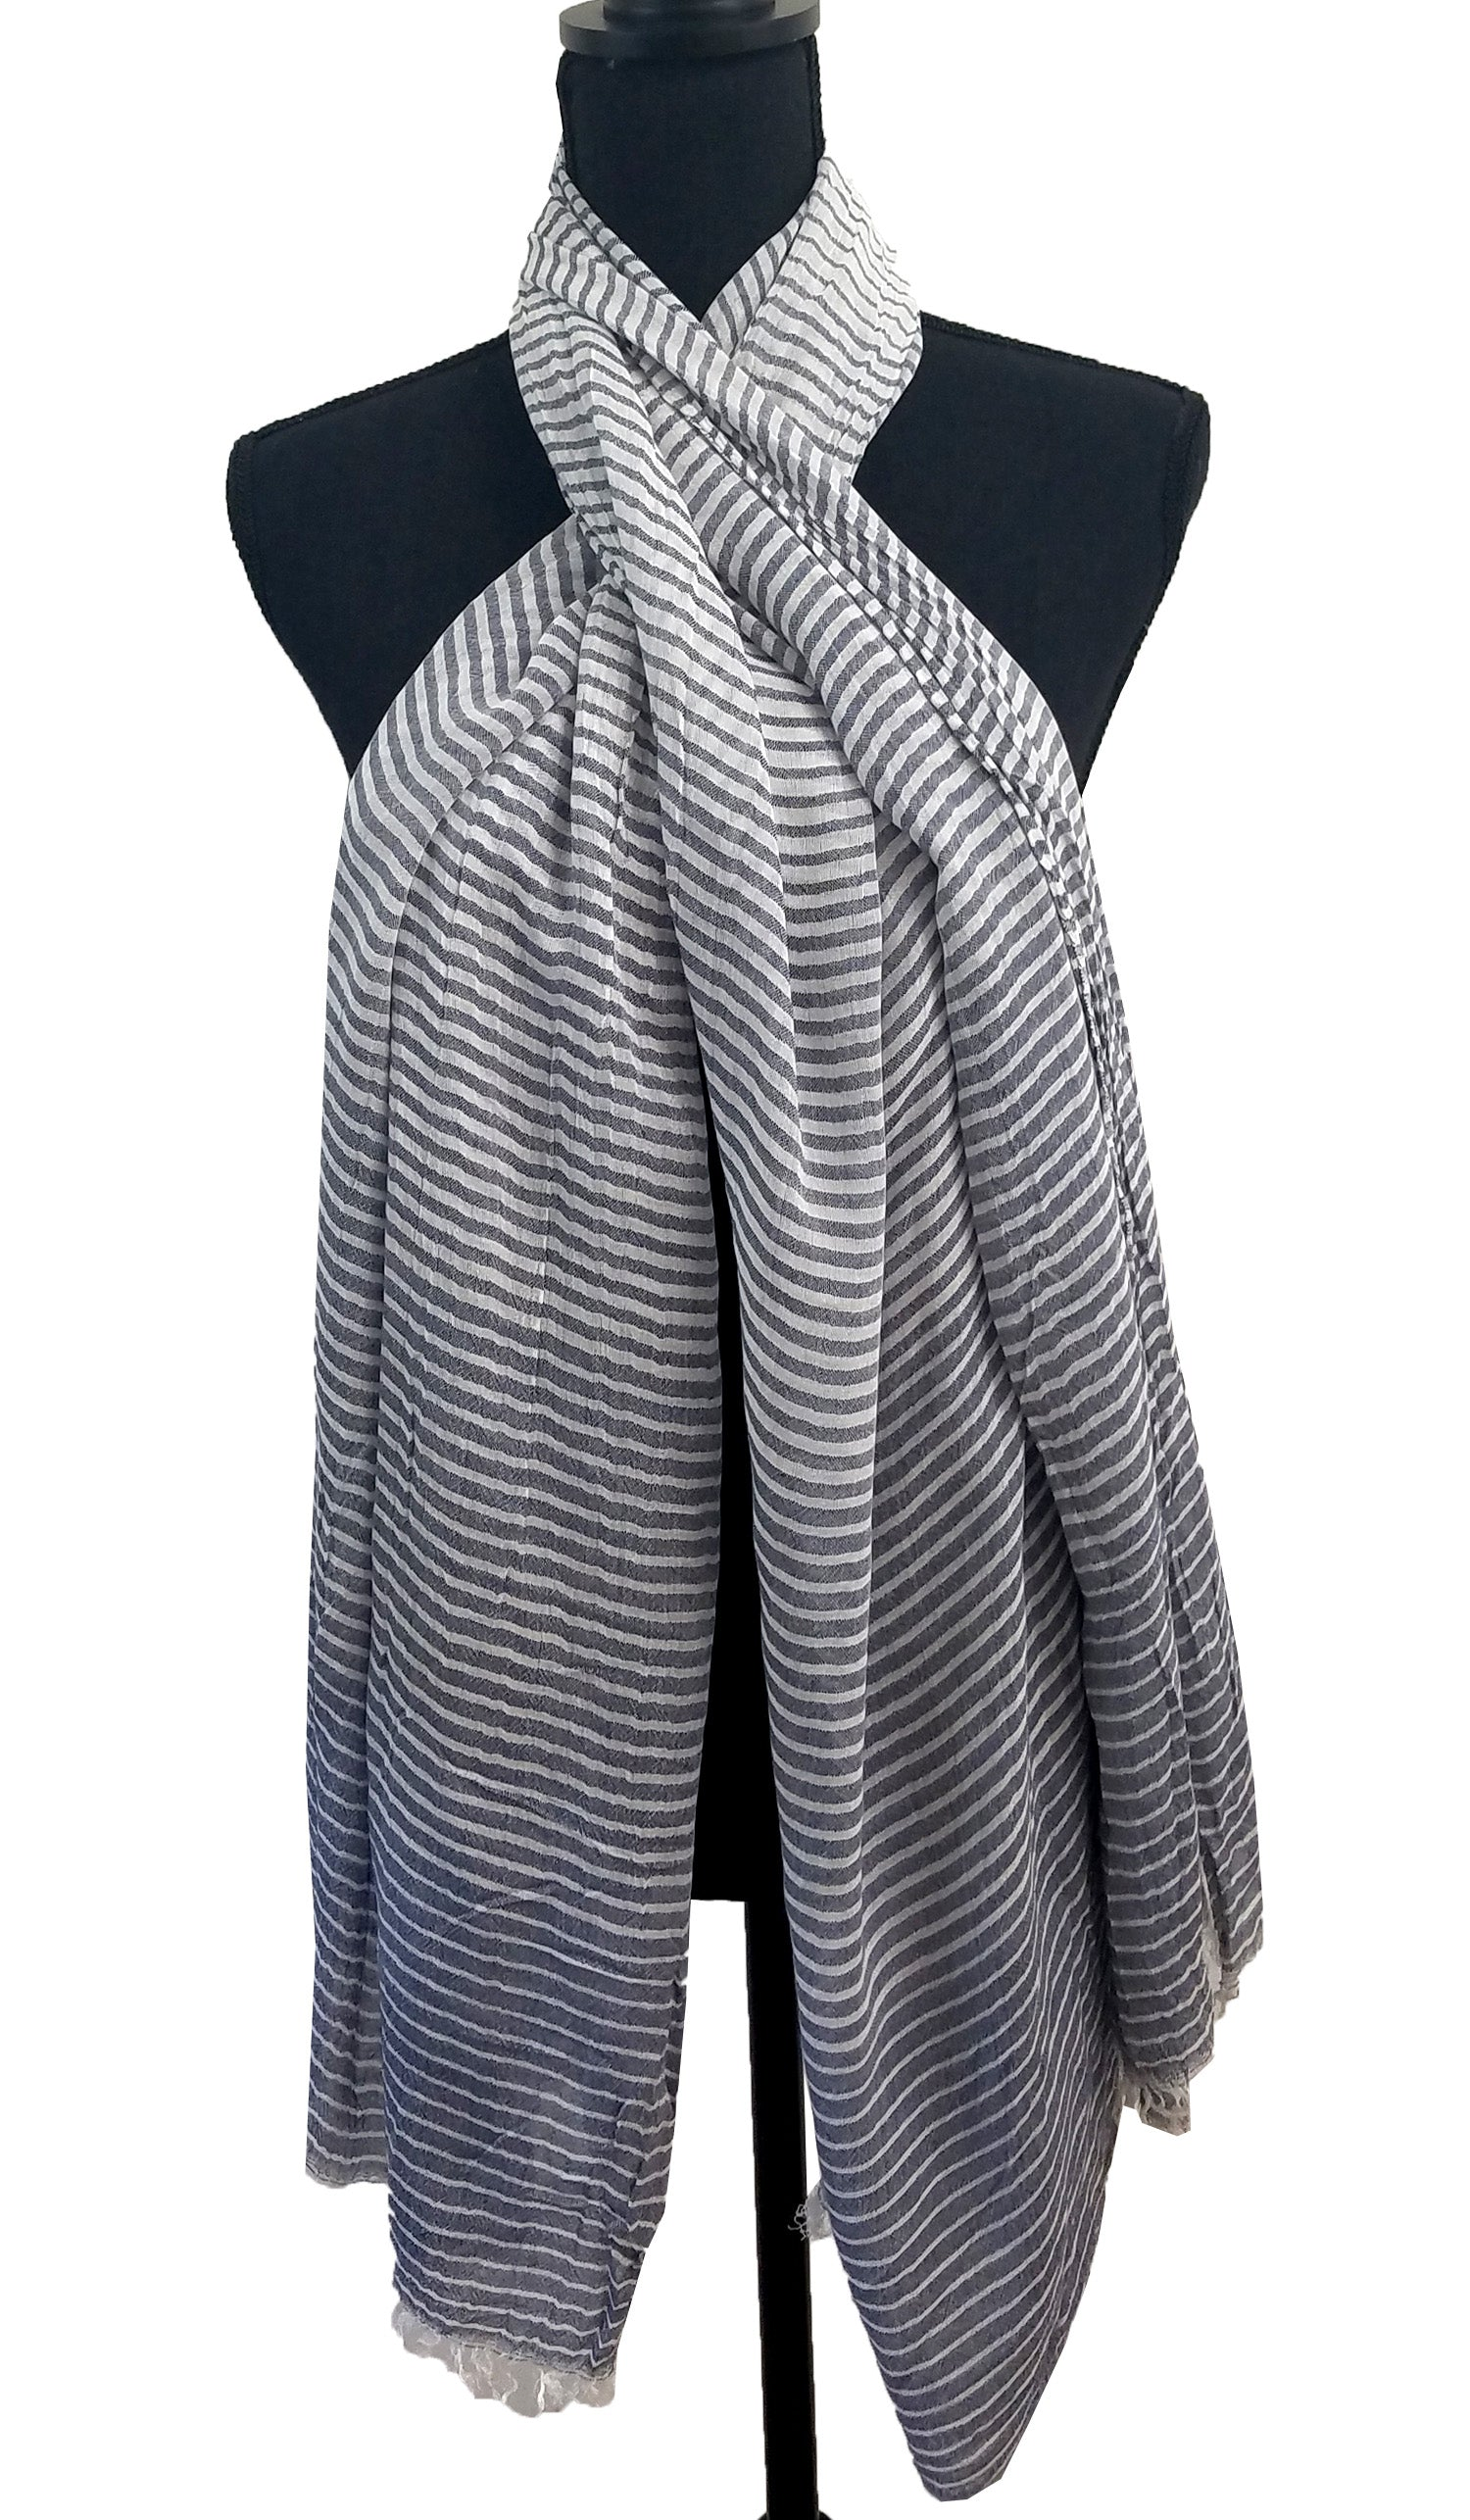 Soft Non slip Striped Wrap Hijab Scarf- Denim Blue and White